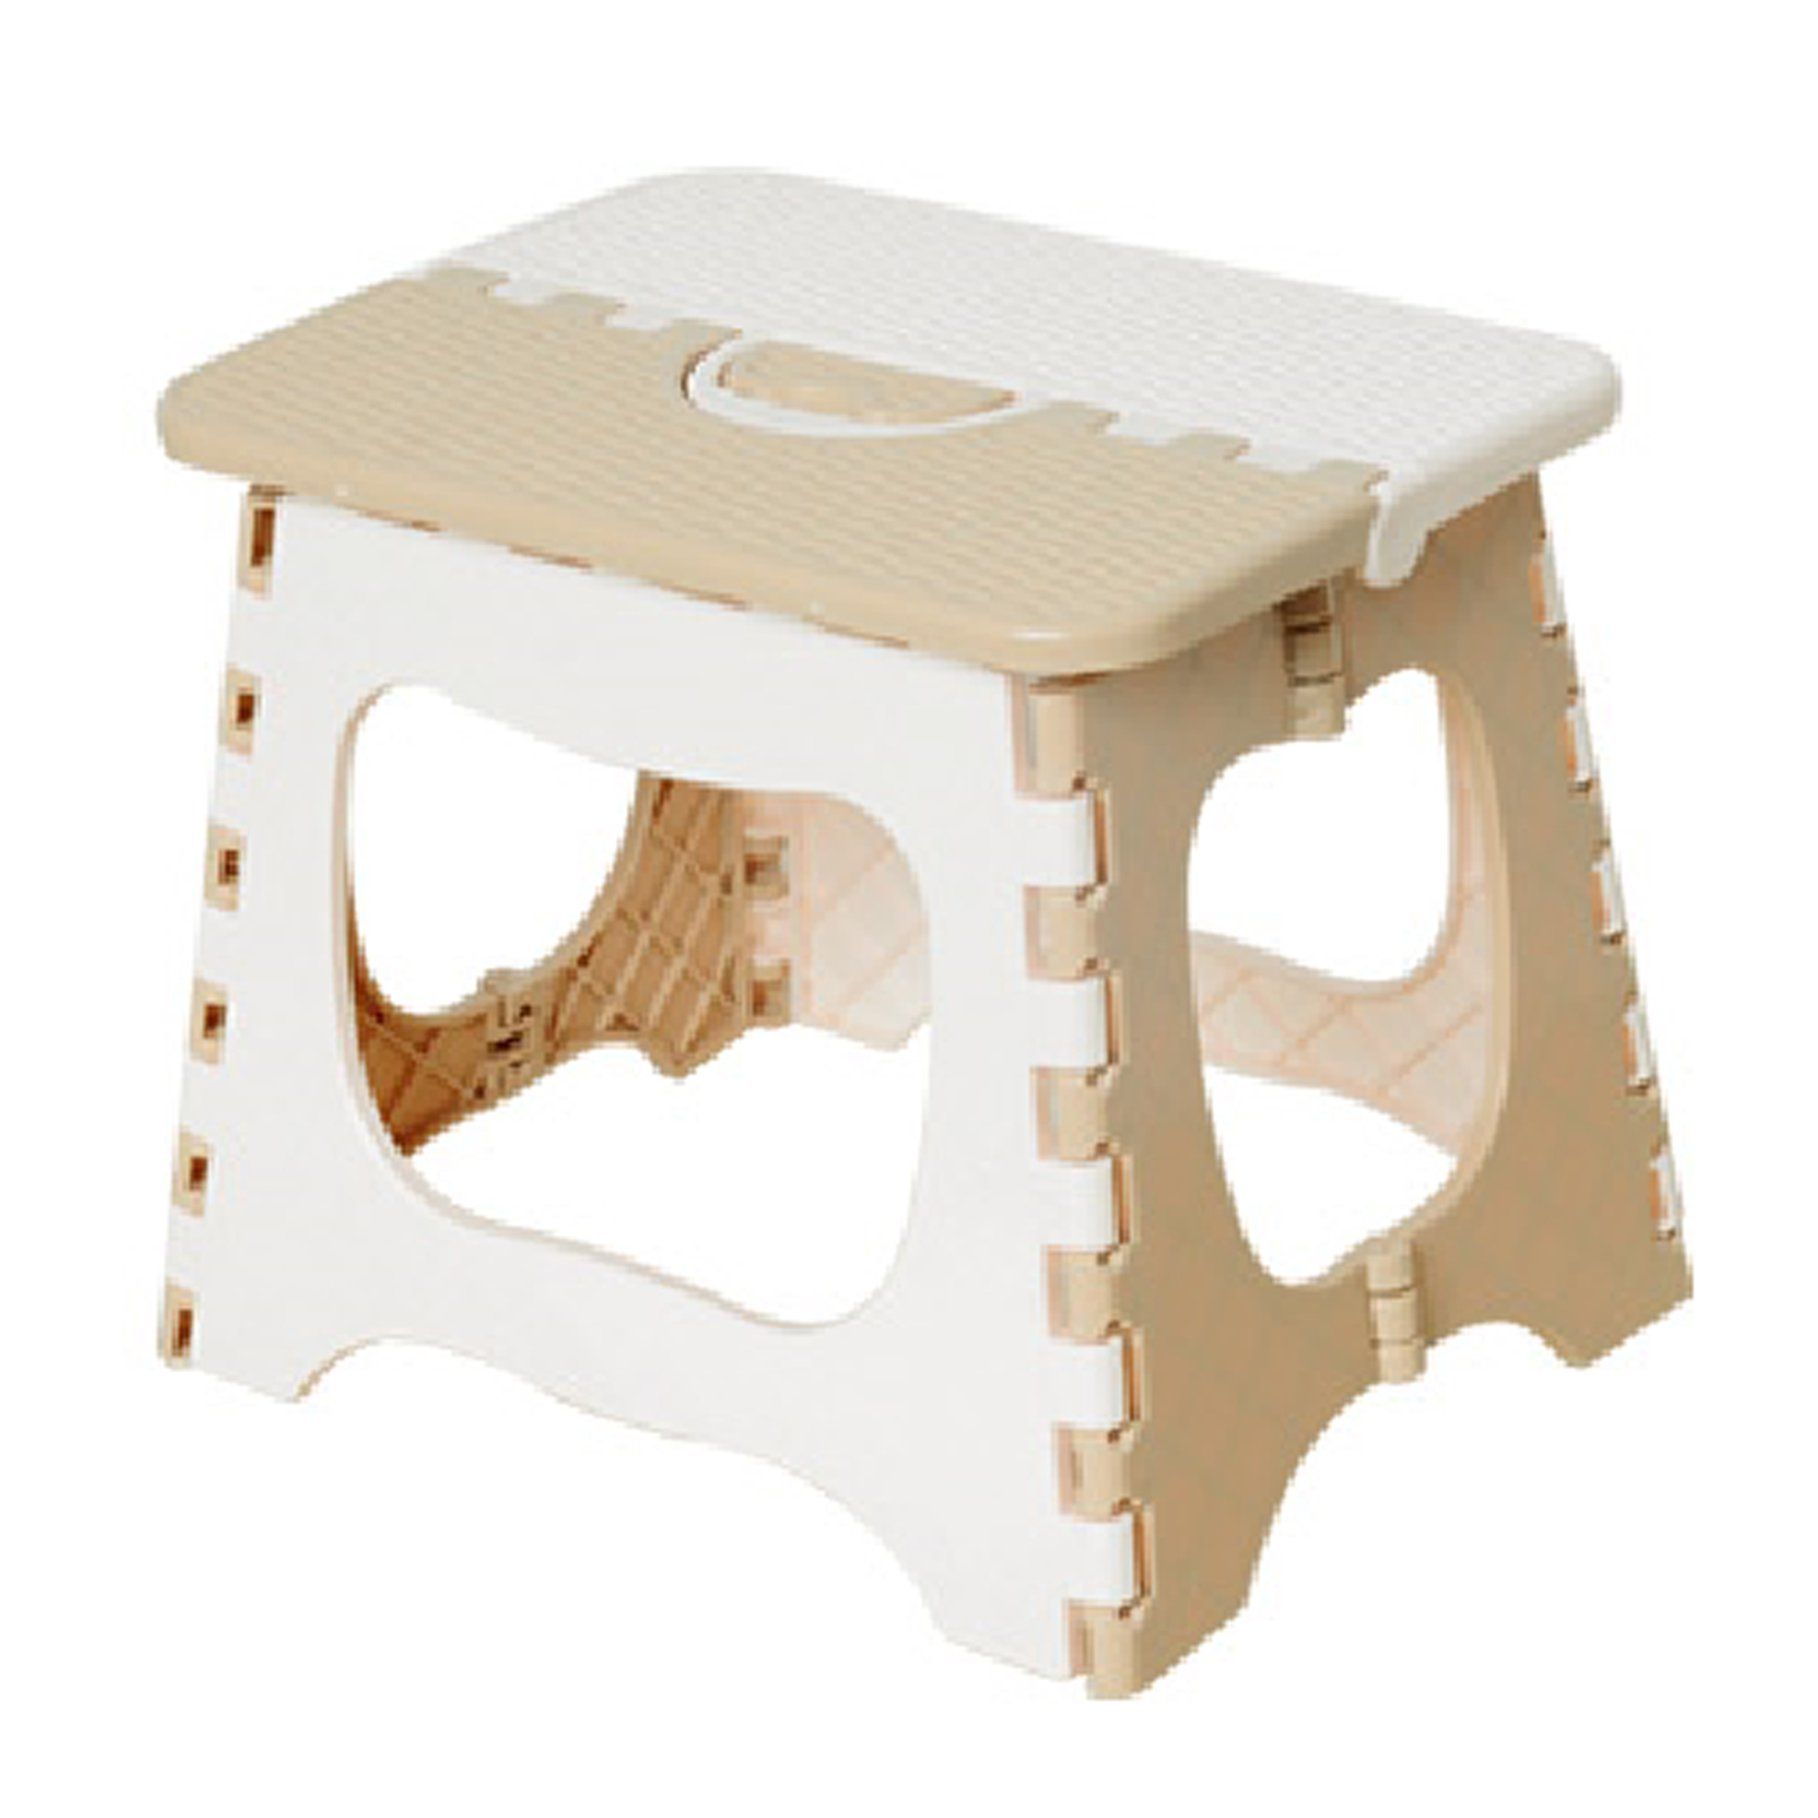 YIUHART Foldable Step Stool for Adults and Kids (Beige)